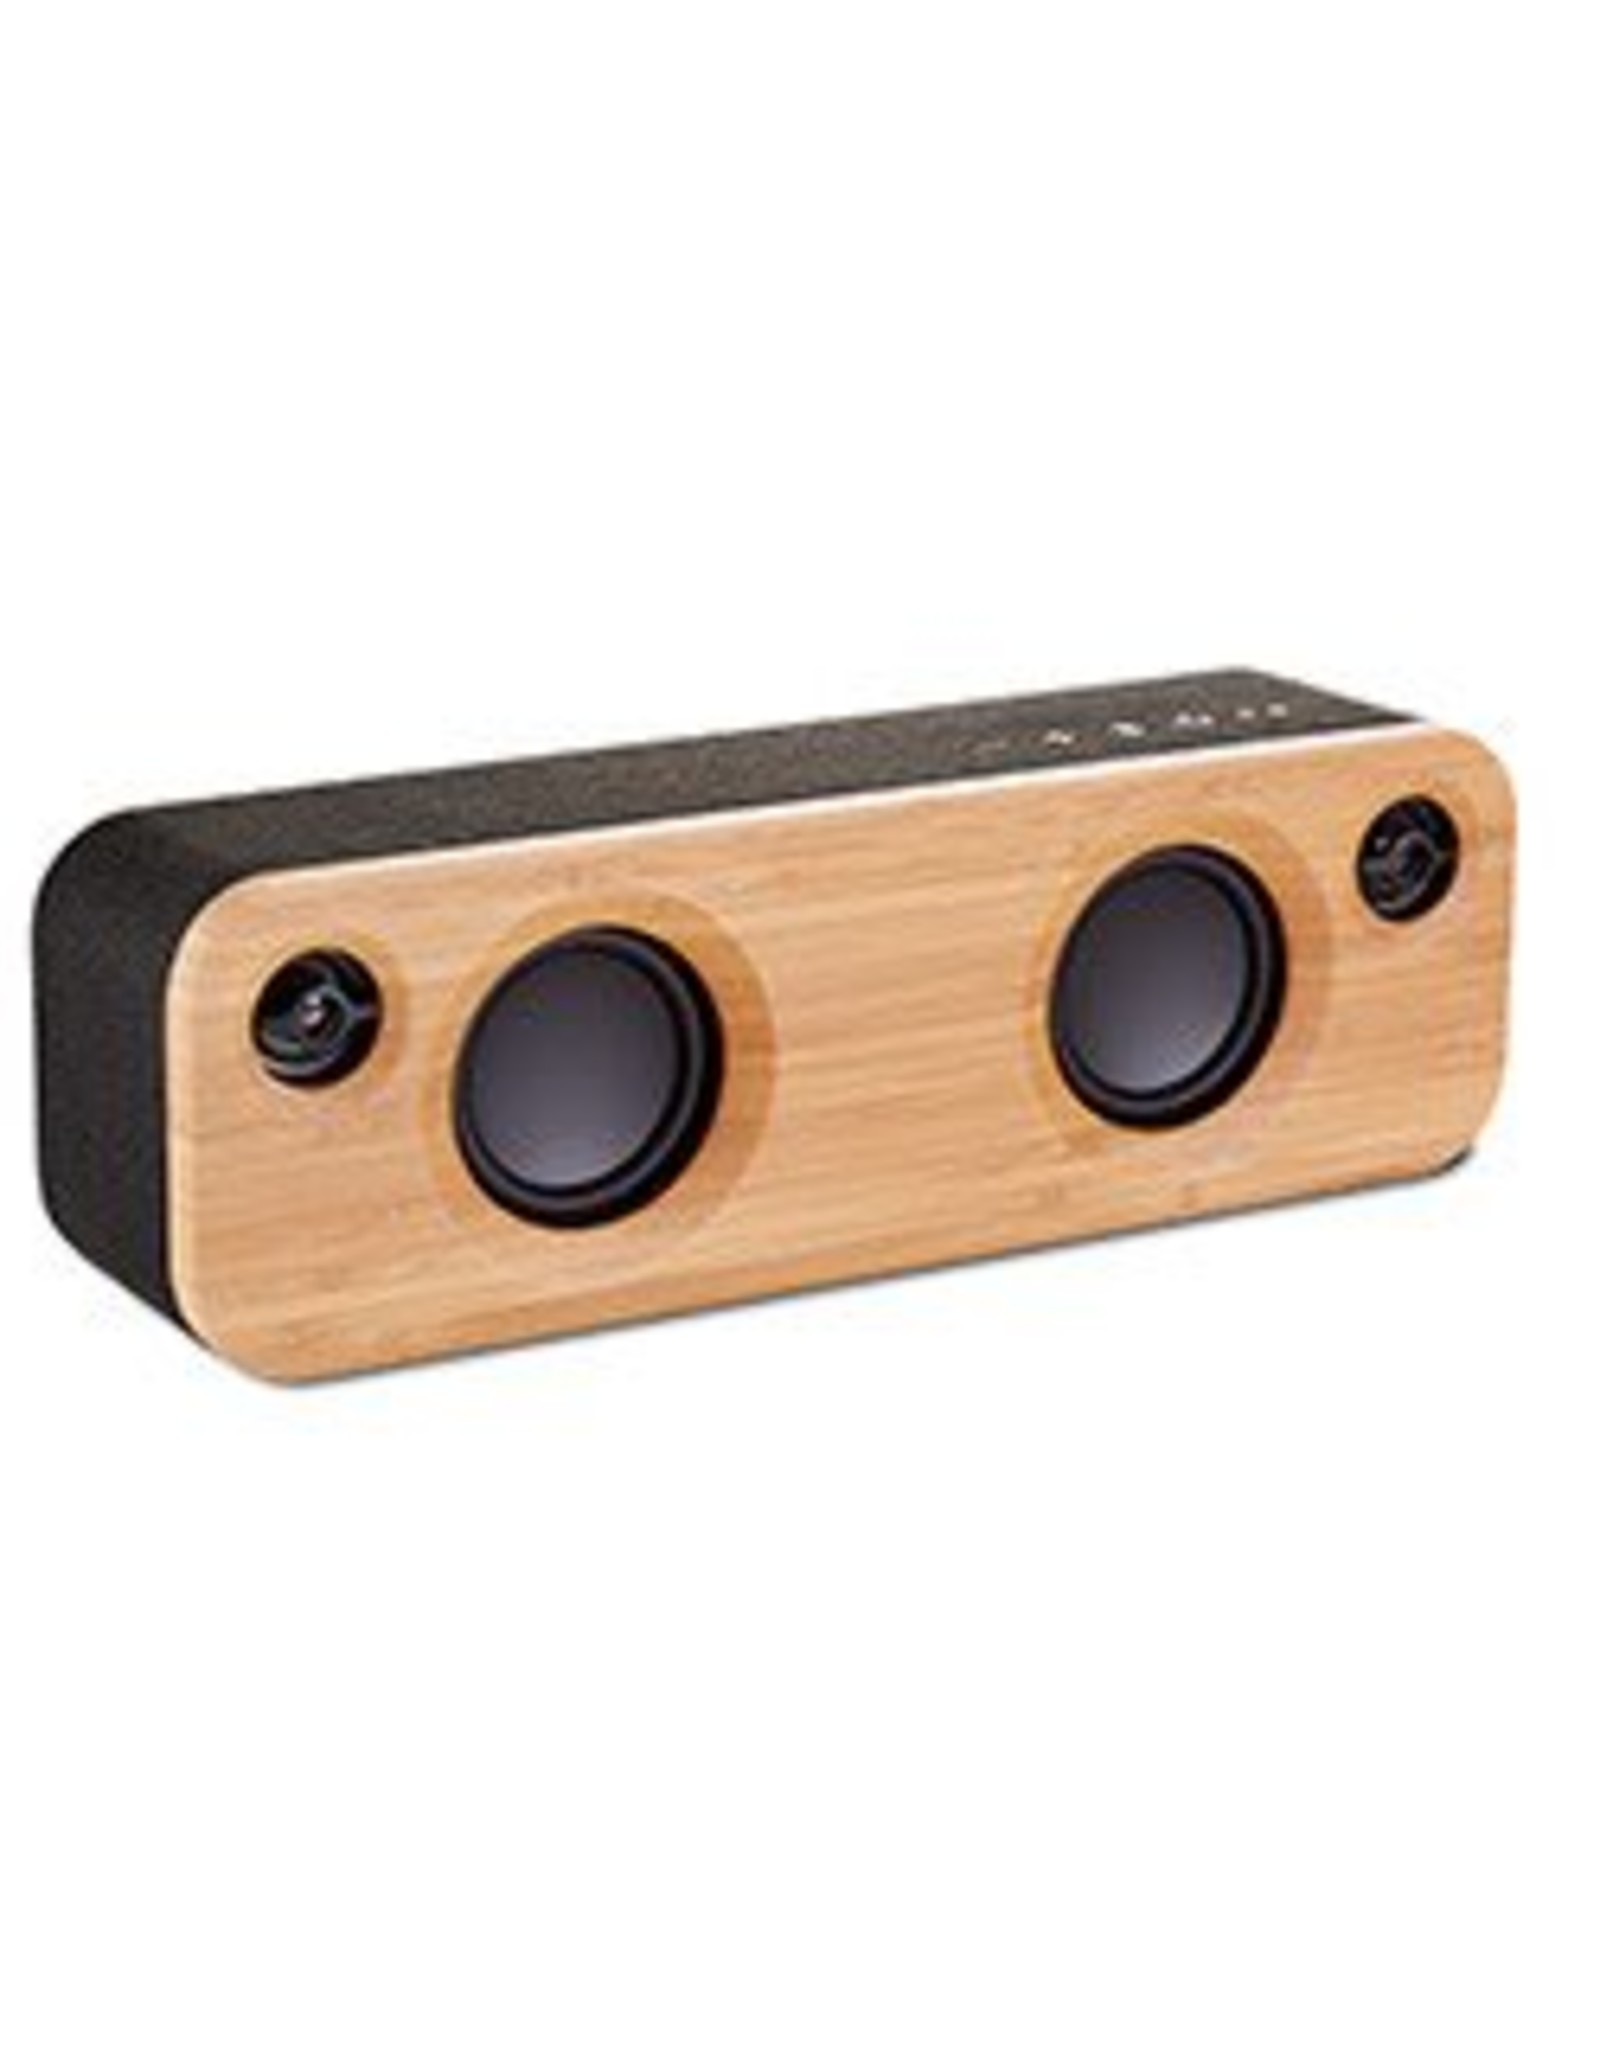 House of Marley The House of Marley | Signature Black Get Together Mini Bluetooth Speaker | 15-00814